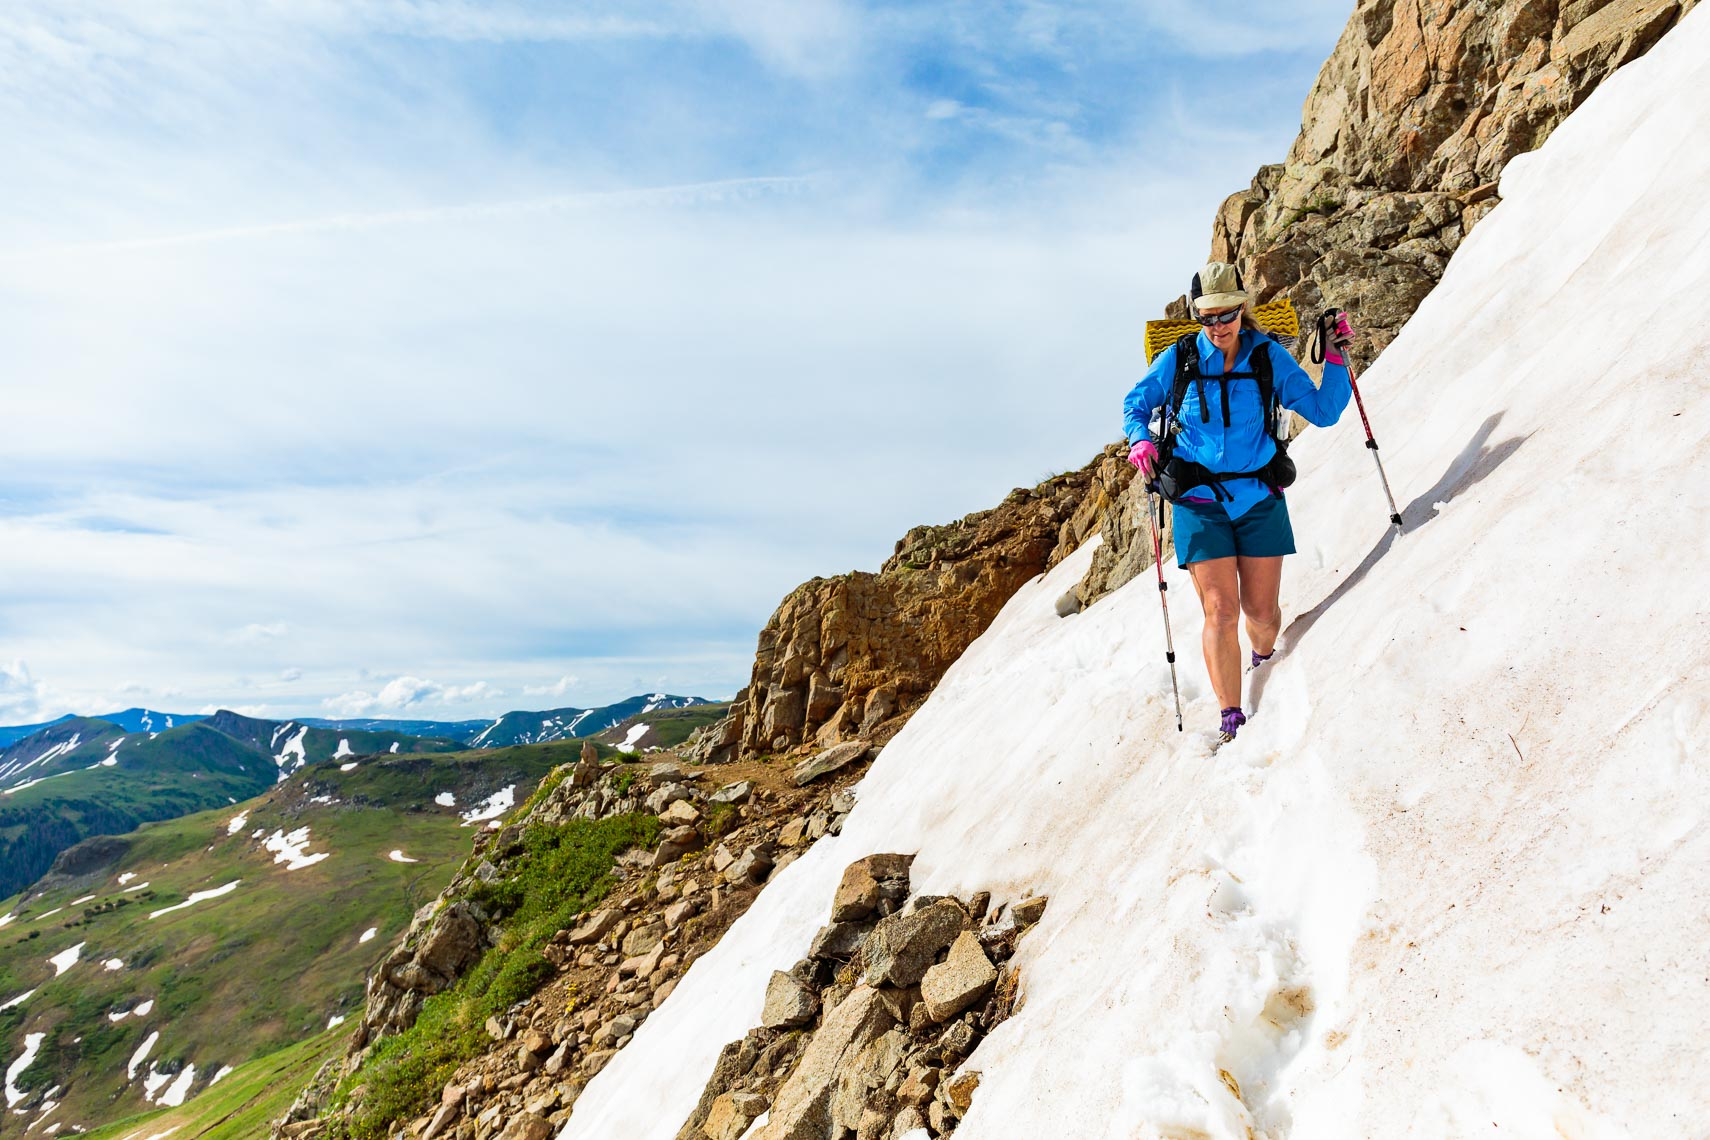 Snowy Trail Crossing Adventure Hiker | Michael DeYoung